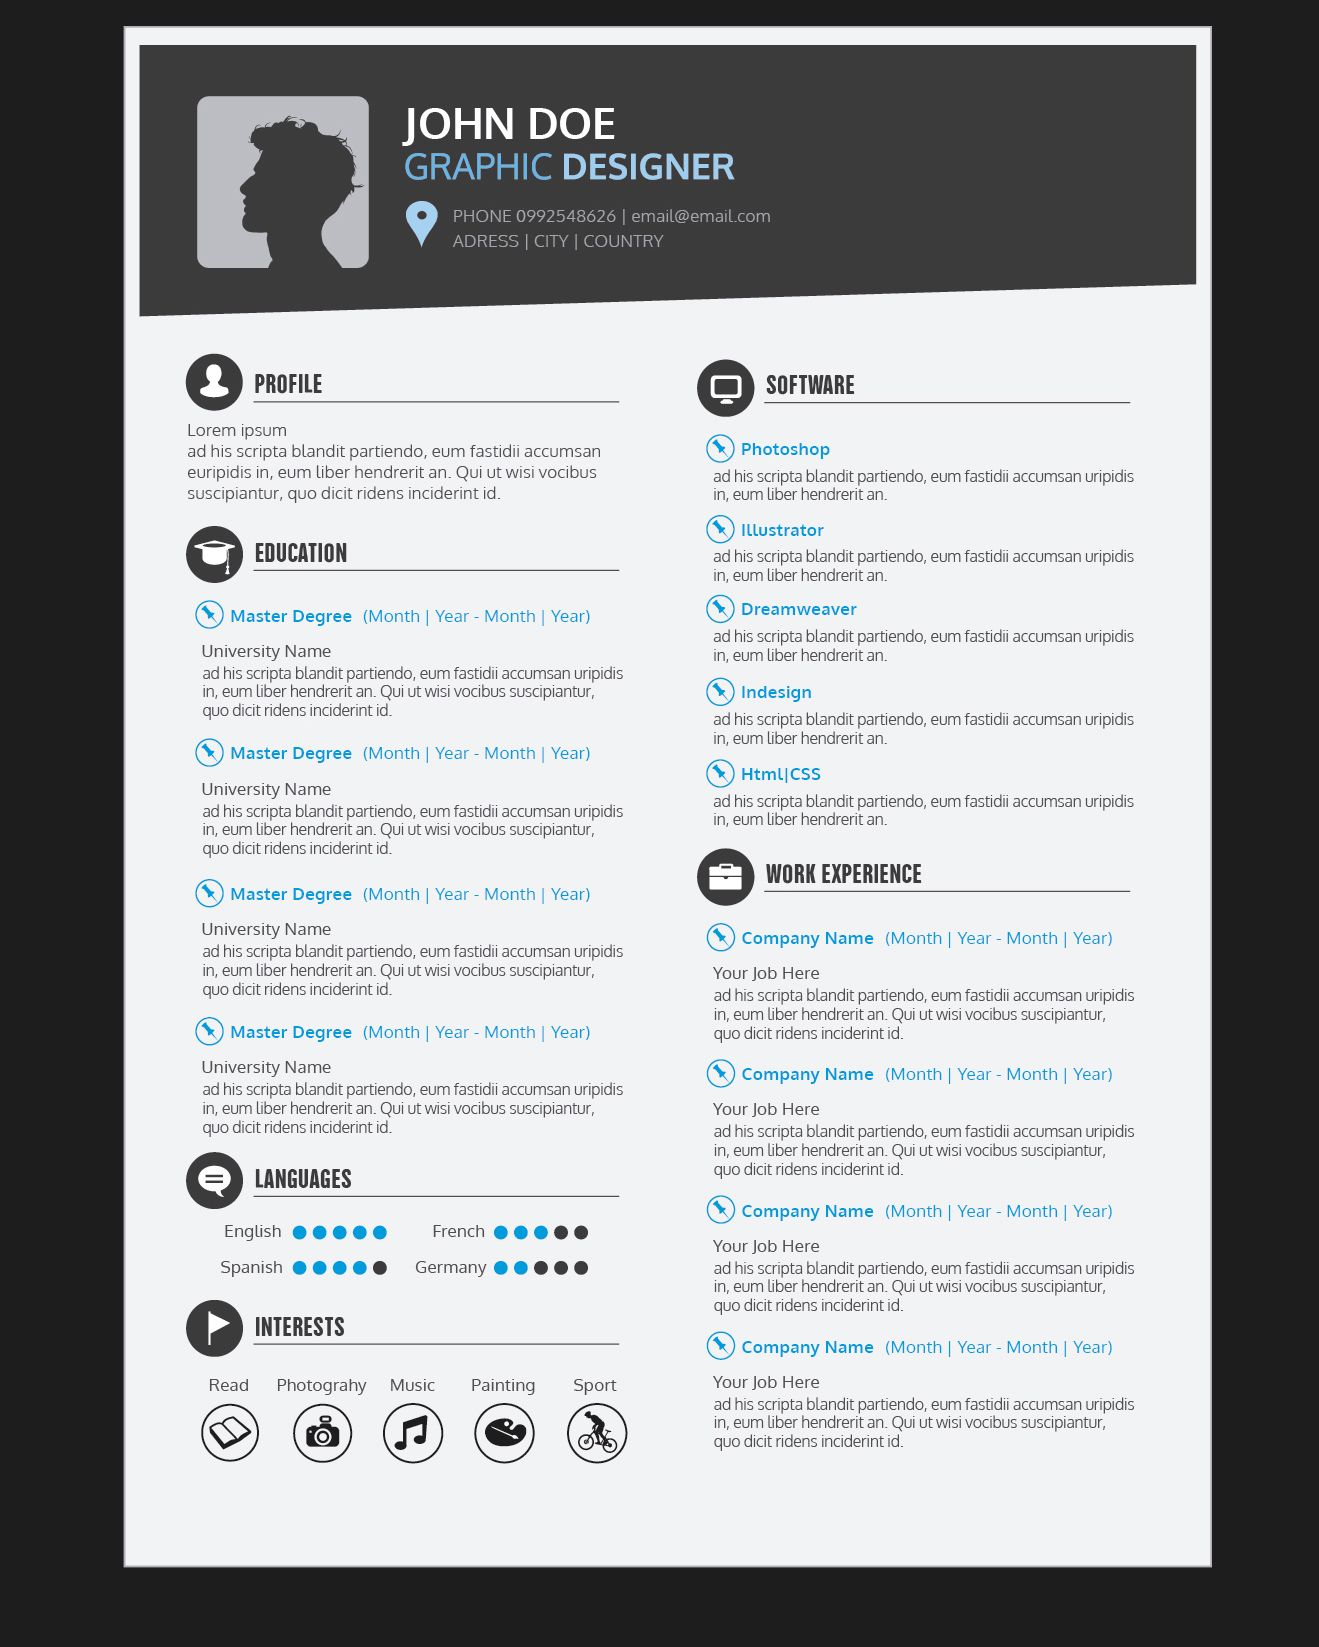 Graphic Designer Resume Templates Graphic Designer Resume Cv Vector Download